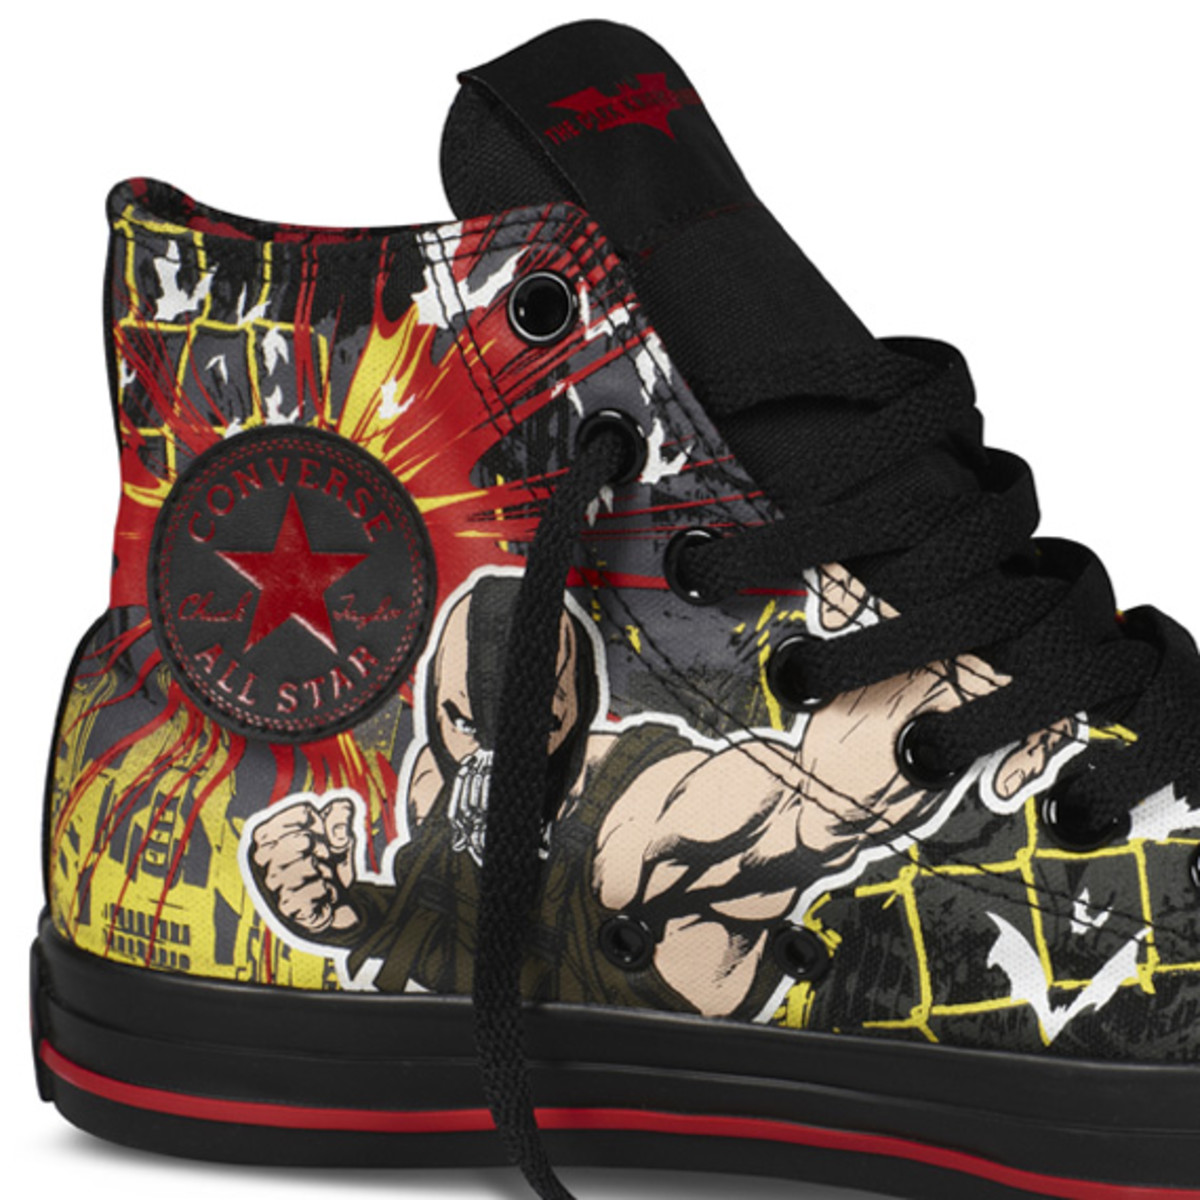 The Dark Knight Rises x CONVERSE Chuck Taylor All Star Collection ... 5674a6882